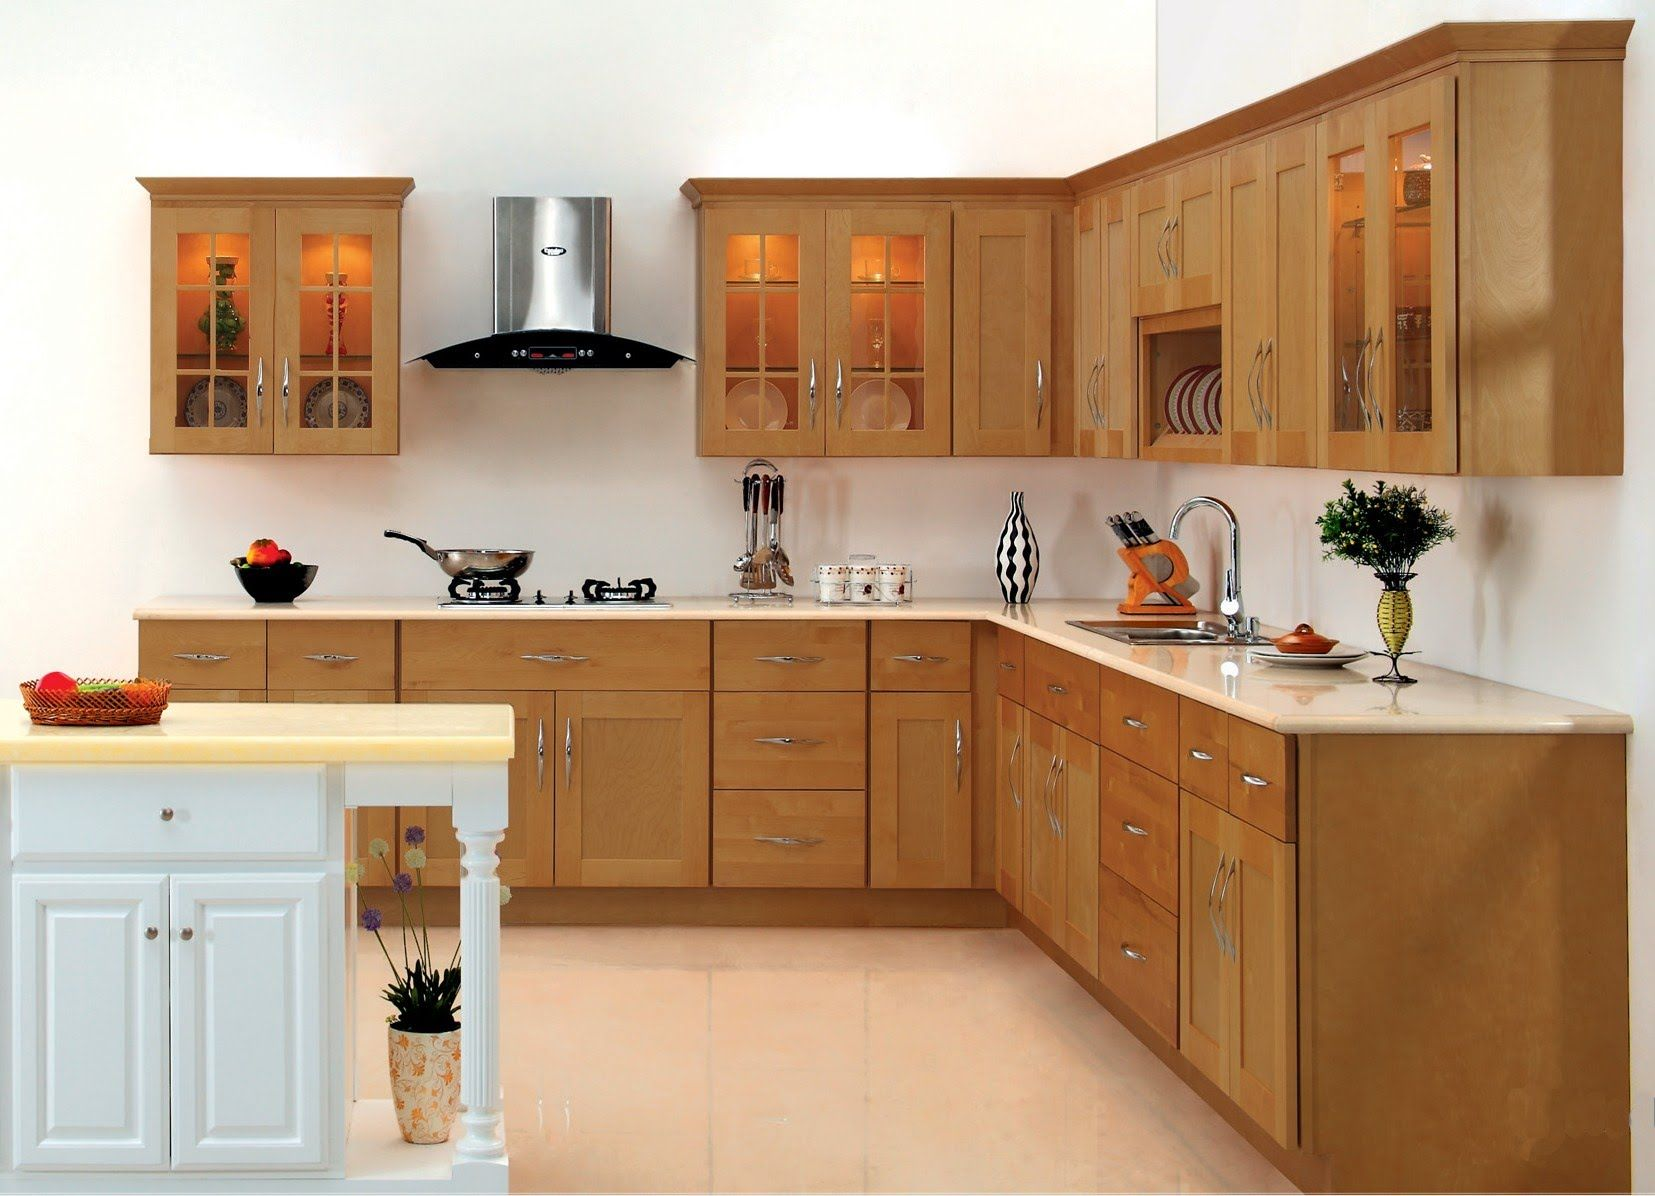 Kitchen Cabinets Online U2013 Check Various Designs And Colors Of Kitchen  Cabinets Online On Pretty Home. Also Check Kitchen Cabinet Handles